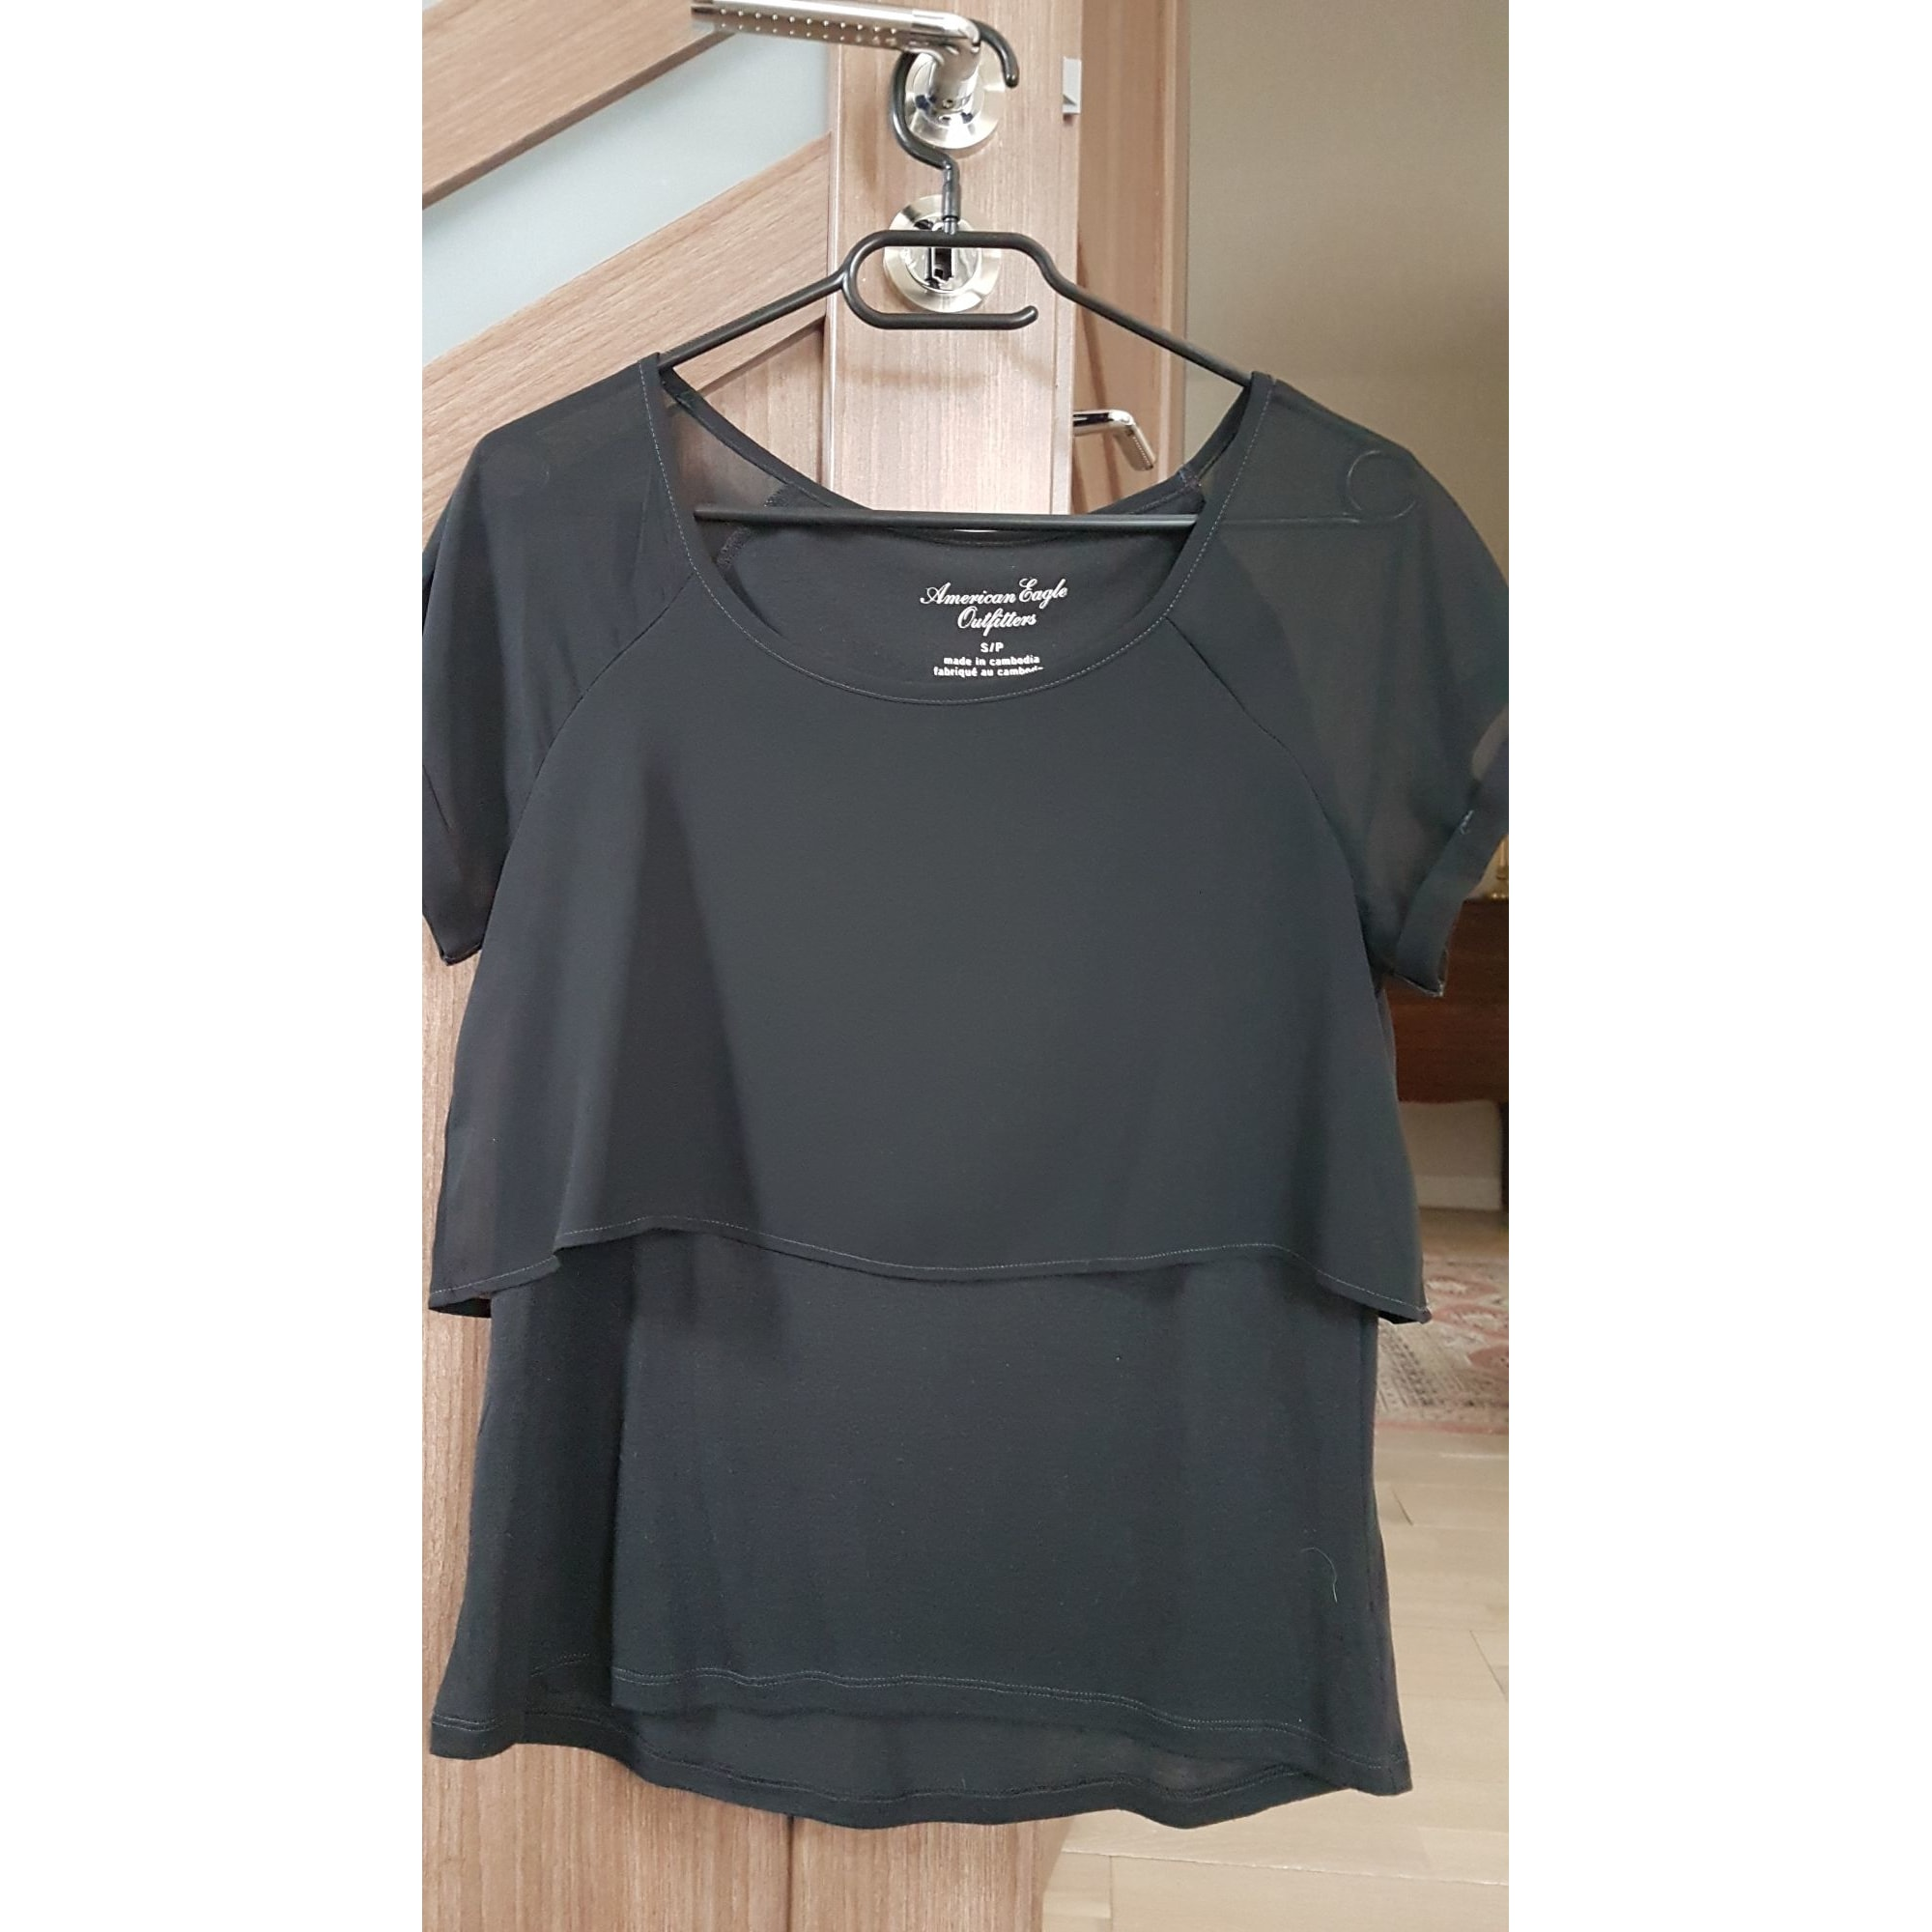 Top, tee-shirt AMERICAN EAGLE OUTFITTERS Noir